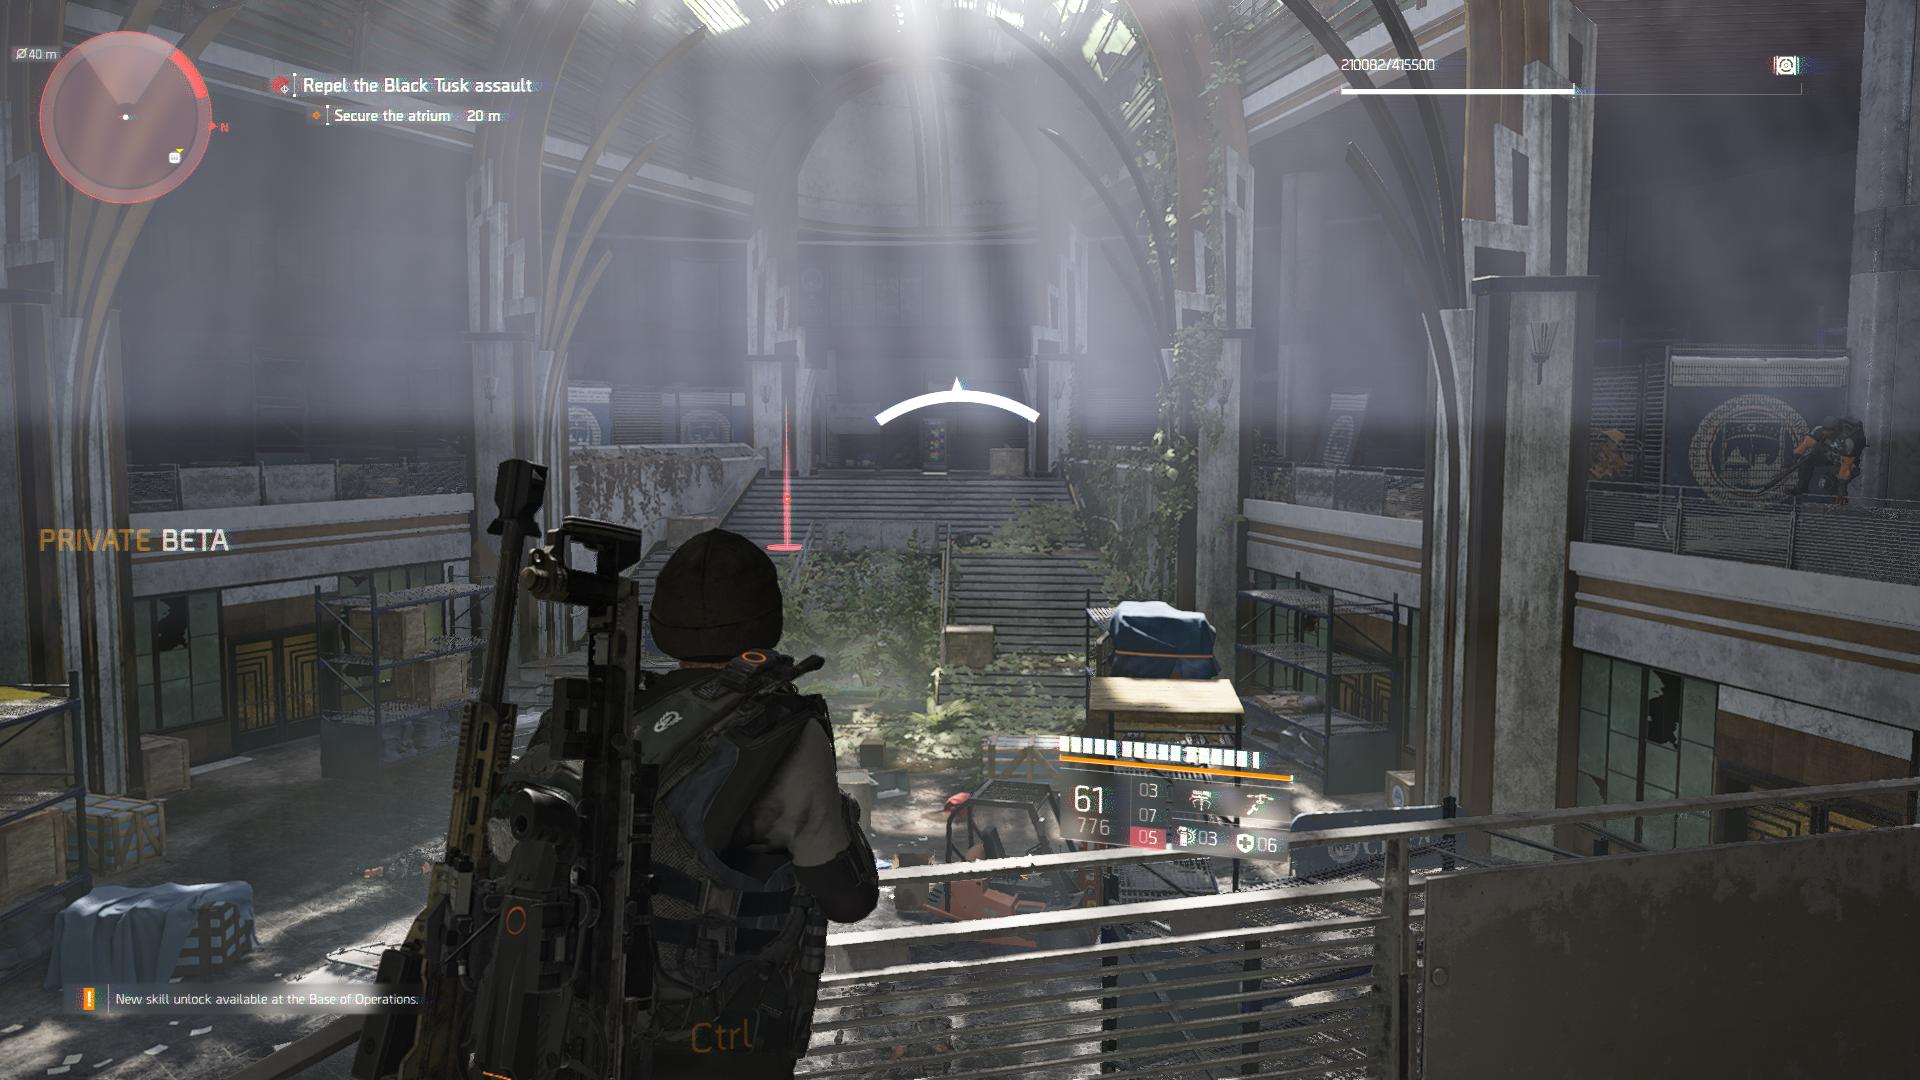 Tom Clancy's The Division 2: Soloing the Black Tusks in the Endgame